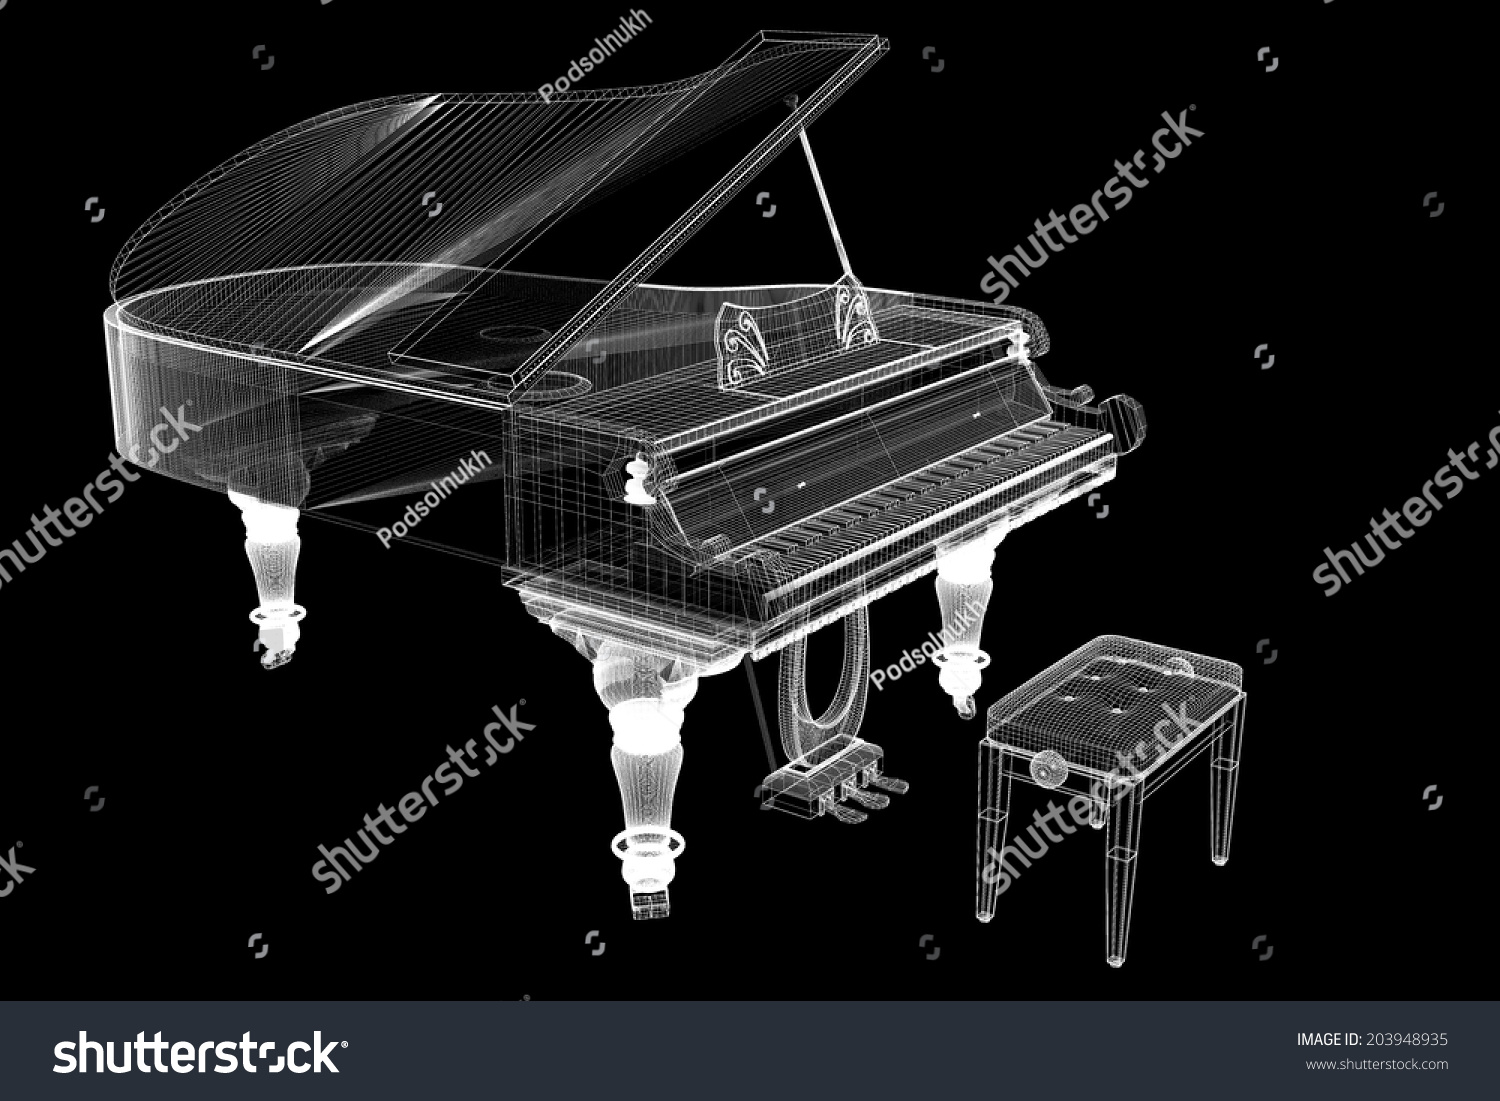 stock photo antique grand piano with path d model body structure wire model 203948935 piano wire bender wiring diagrams wiring diagrams Upright Piano at panicattacktreatment.co